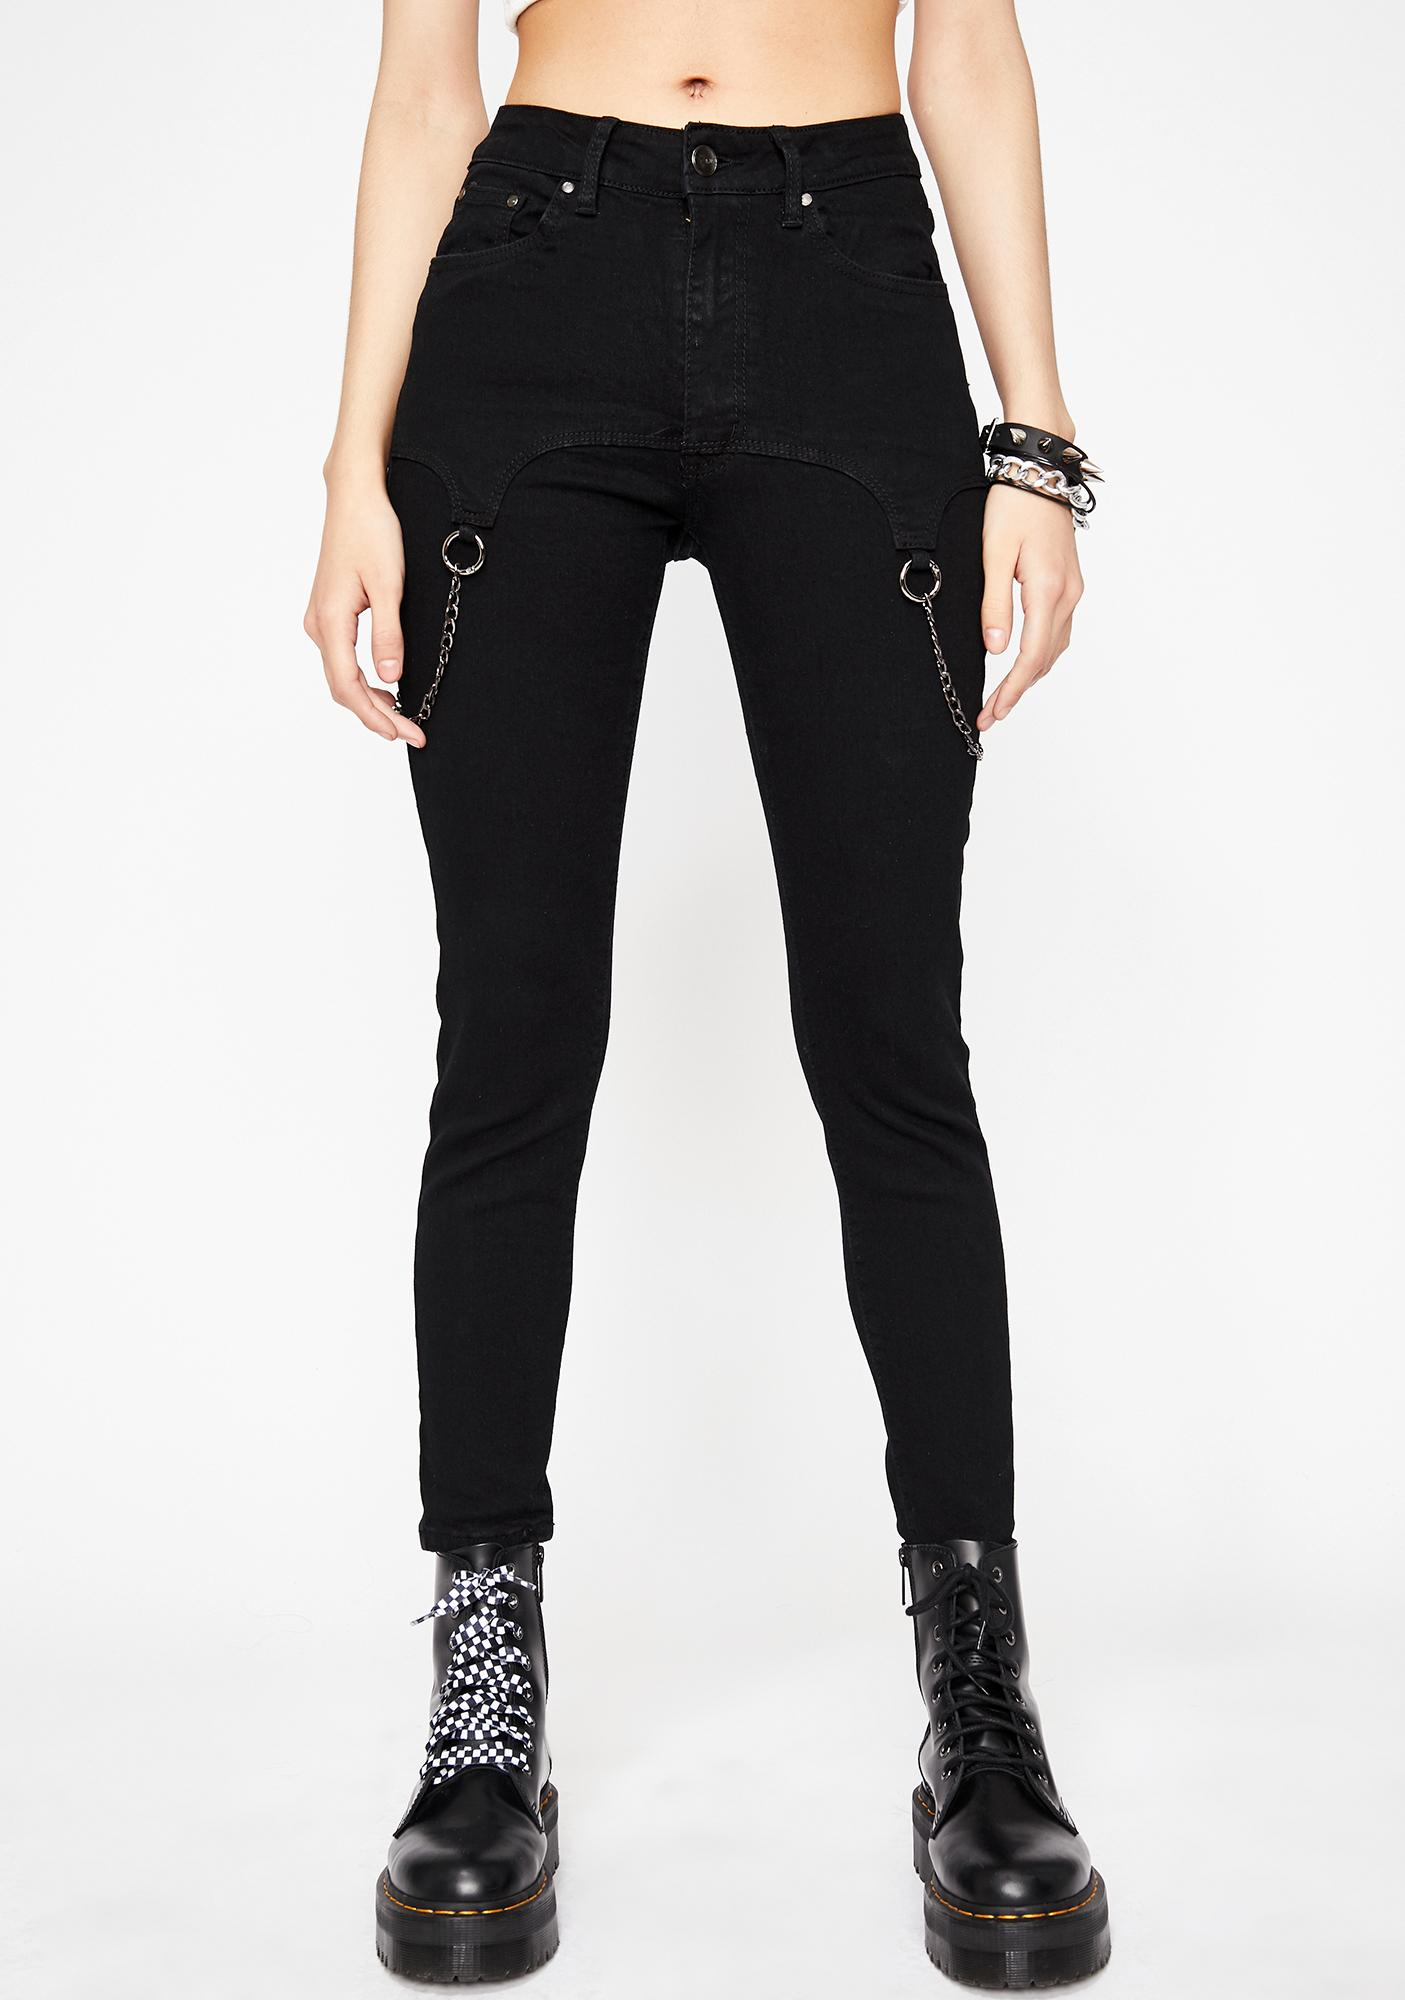 Night Chained Gang Skinny Jeans